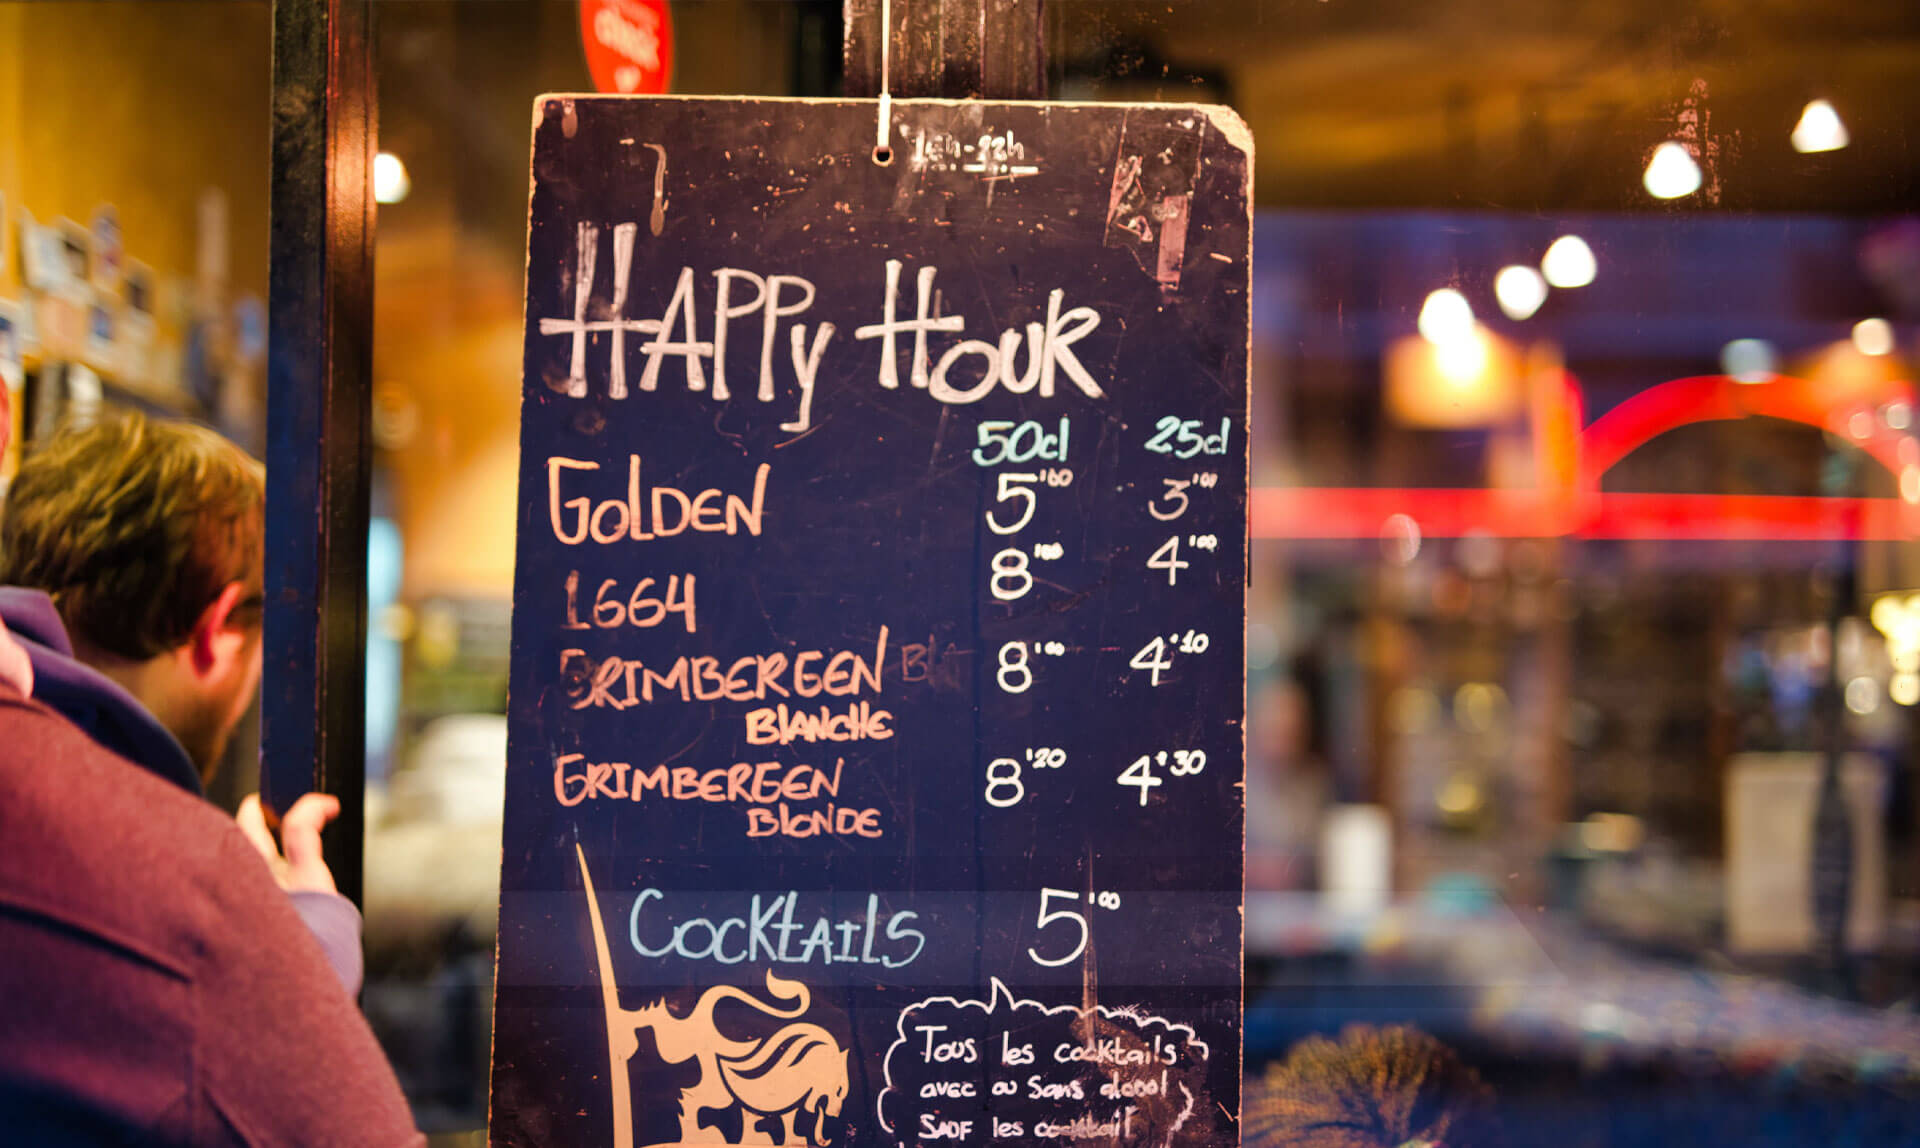 CB-LS-One-for-restaurants-customer-retention-Specials,-happy-hours,-offers-and-discounts